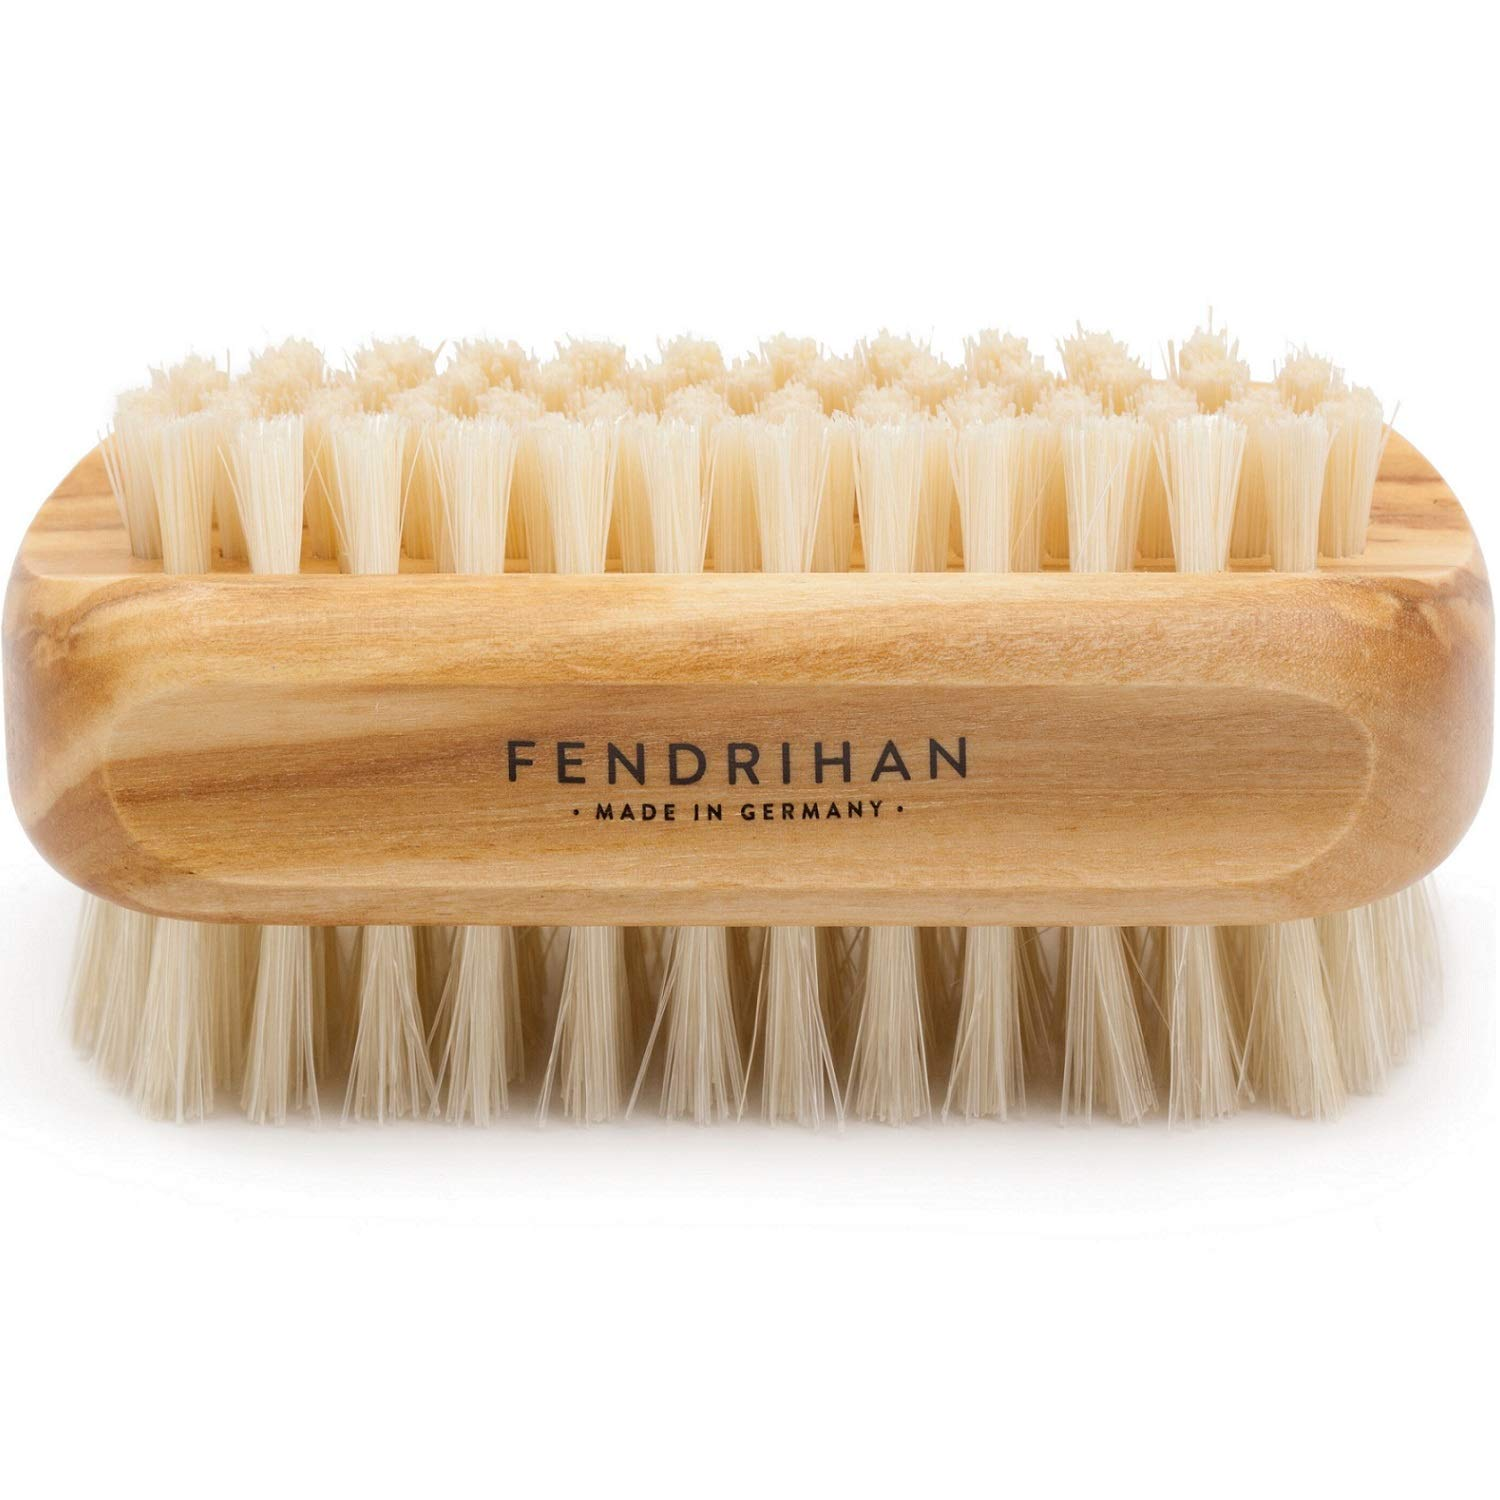 Genuine Boar Bristle Nail Brush with Real Olive Wood Handle MADE IN GERMANY by Fendrihan